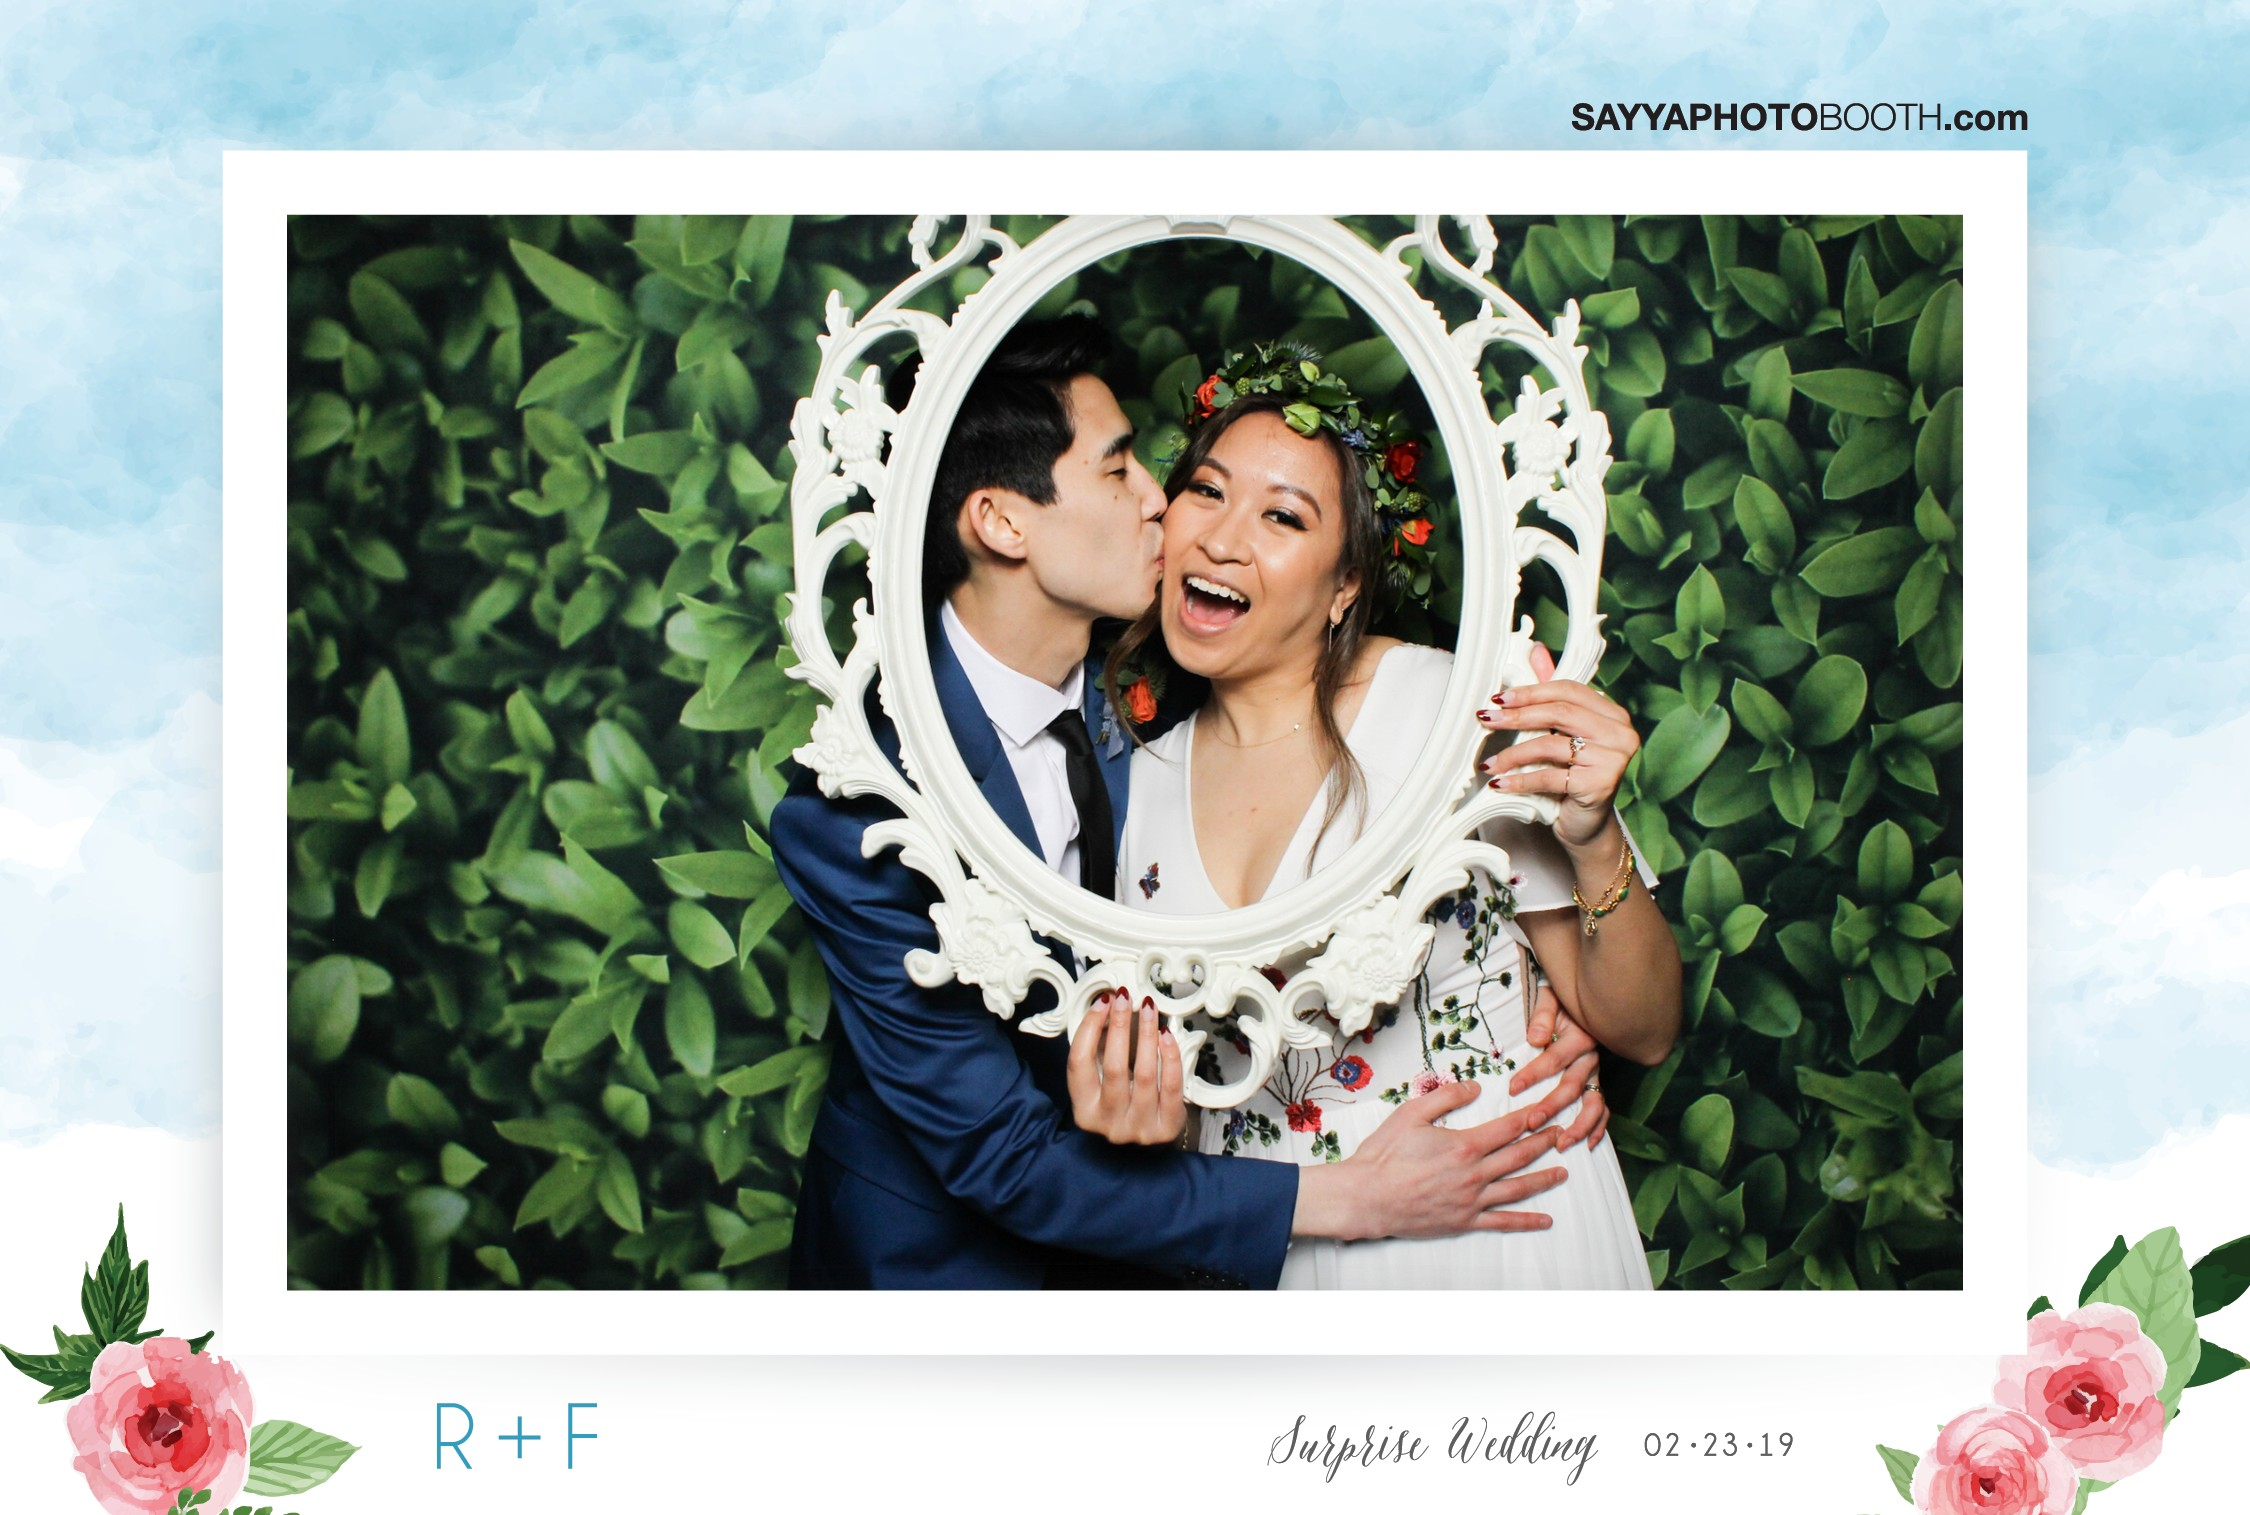 Francesca & Ryan's Surprise Wedding